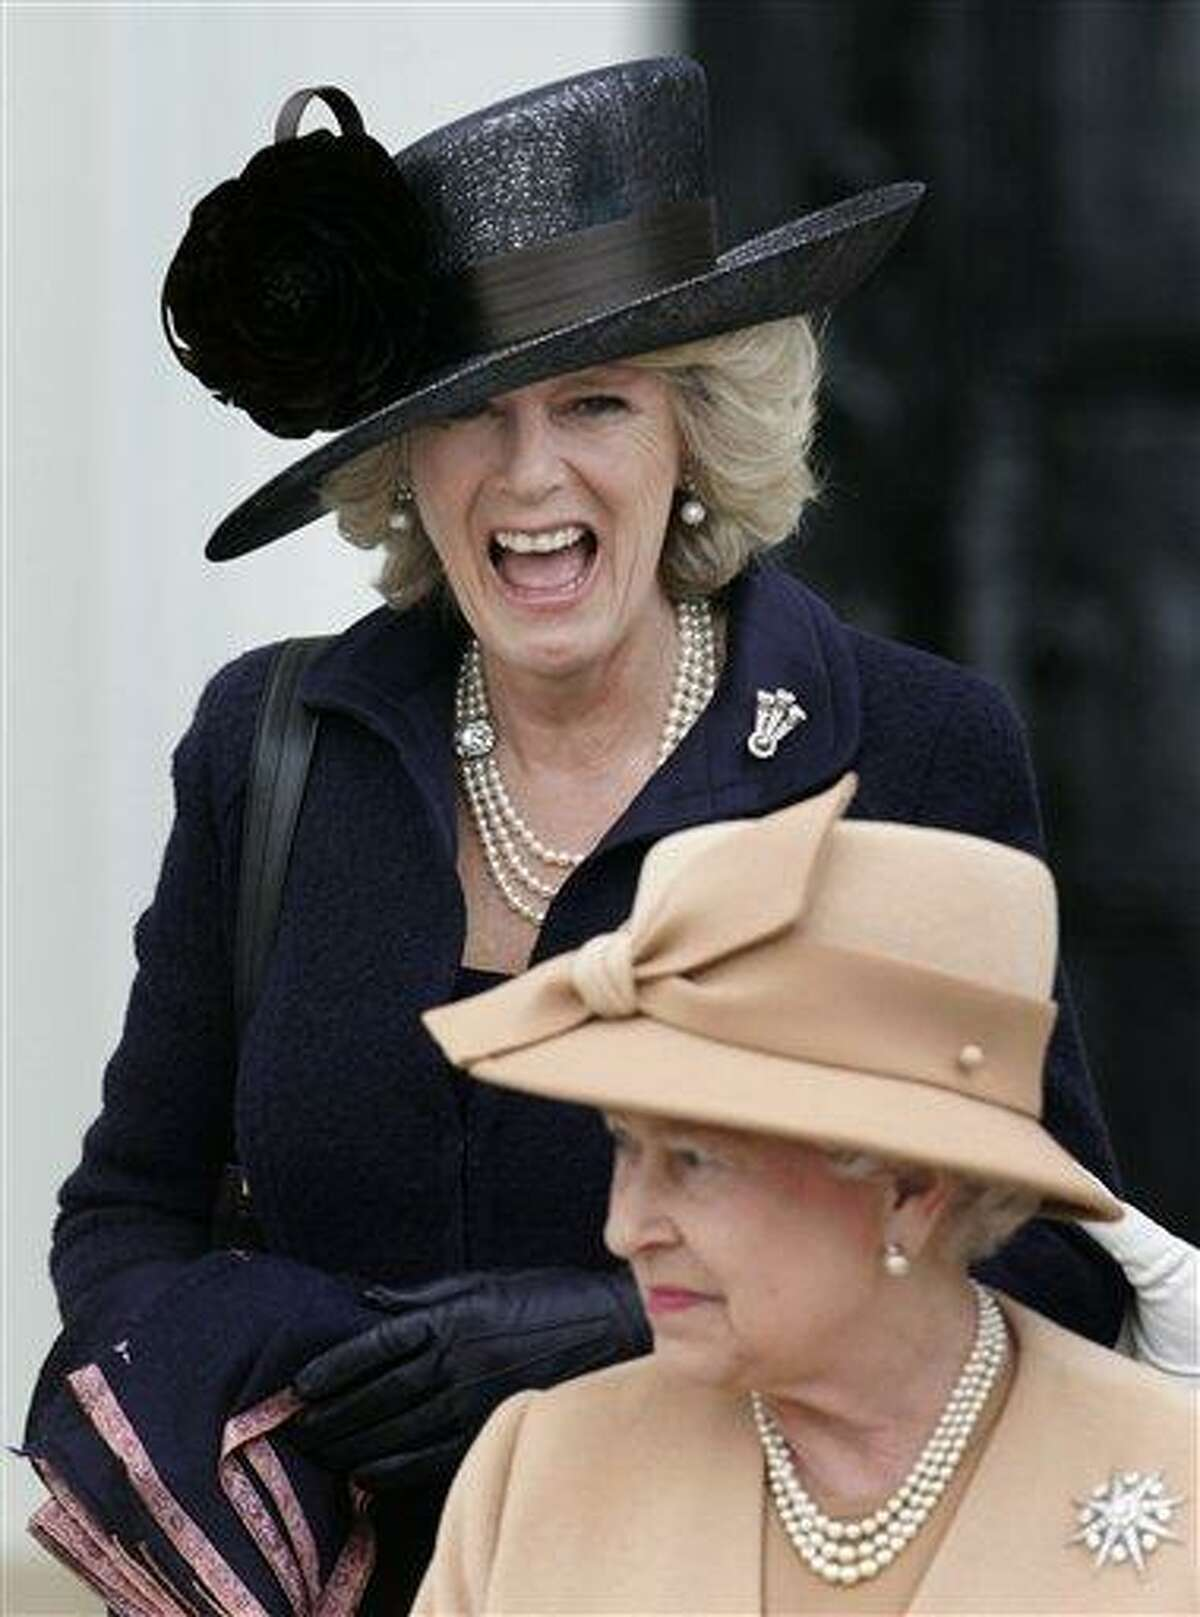 Britain's Camilla, the Duchess of Cornwall, top, laughs in 2006 as members of the royal family including Queen Elizabeth II, bottom, and Prince Philip leave after the Sovereign's Parade at the Royal Military Academy Sandhurst in England where Prince Harry, received his military commission. Queen Elizabeth II has appointed the Duchess of Cornwall the highest female rank in the Royal Victorian Order, Buckingham Palace said Monday. The announcement that Camilla has been made a Dame Grand Cross comes on the day of her seventh wedding anniversary with Prince Charles, the queen's son. Associated Press